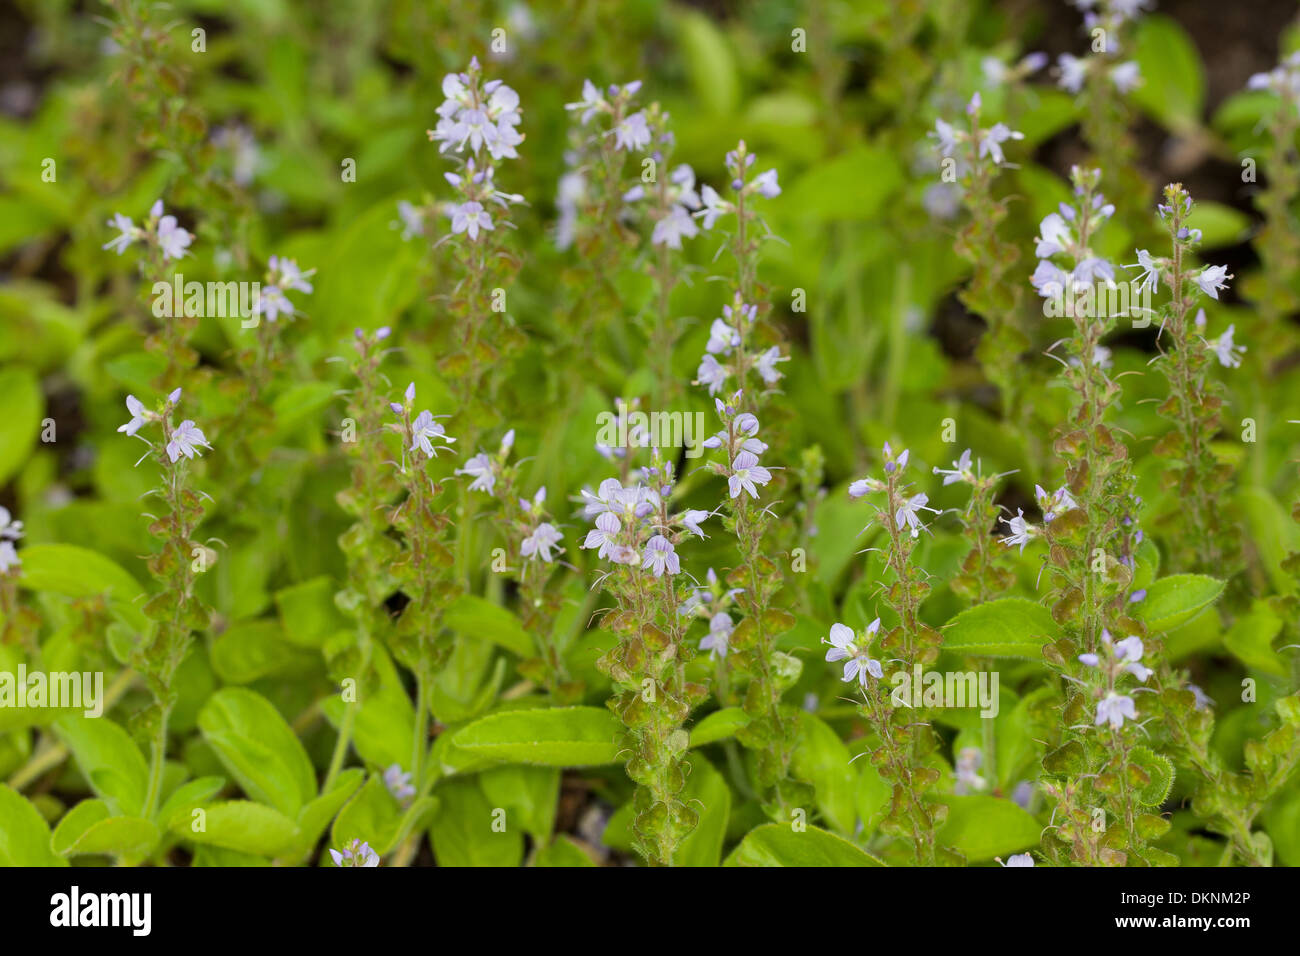 heath speedwell common speedwell common gypsyweed paul. Black Bedroom Furniture Sets. Home Design Ideas